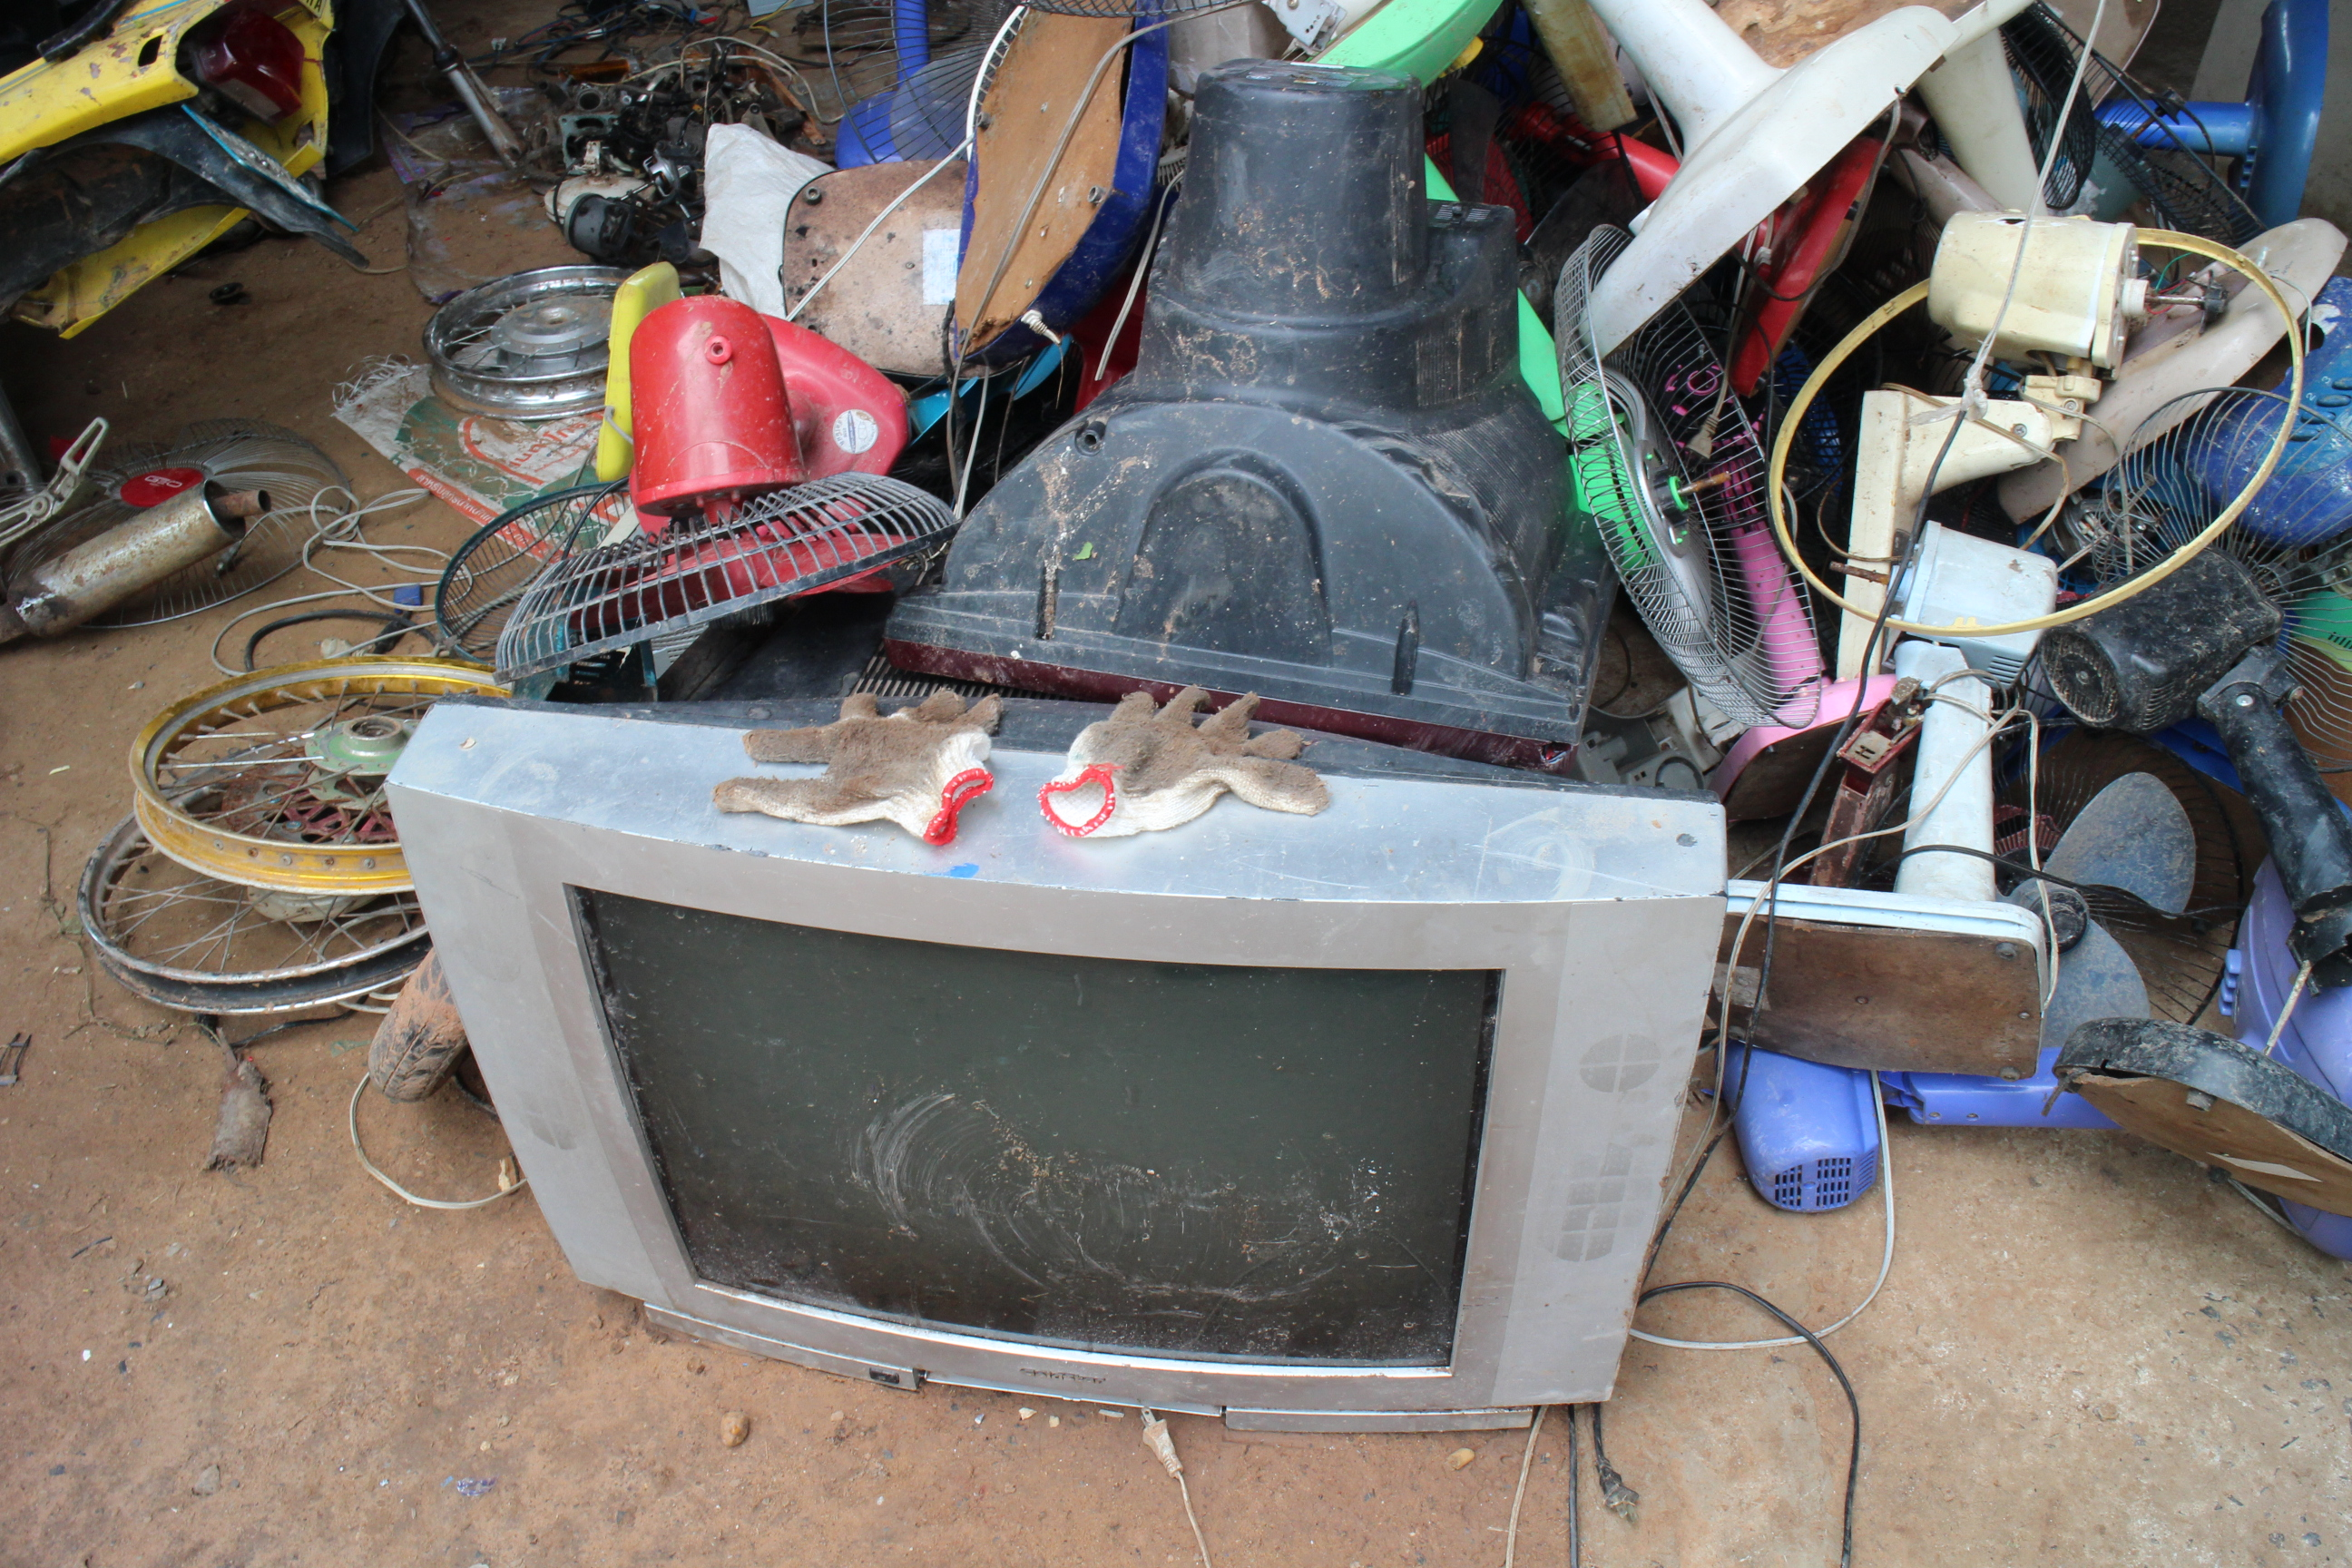 A pile of discarded electronic items that will be broken down to separate the valuable pieces within them.